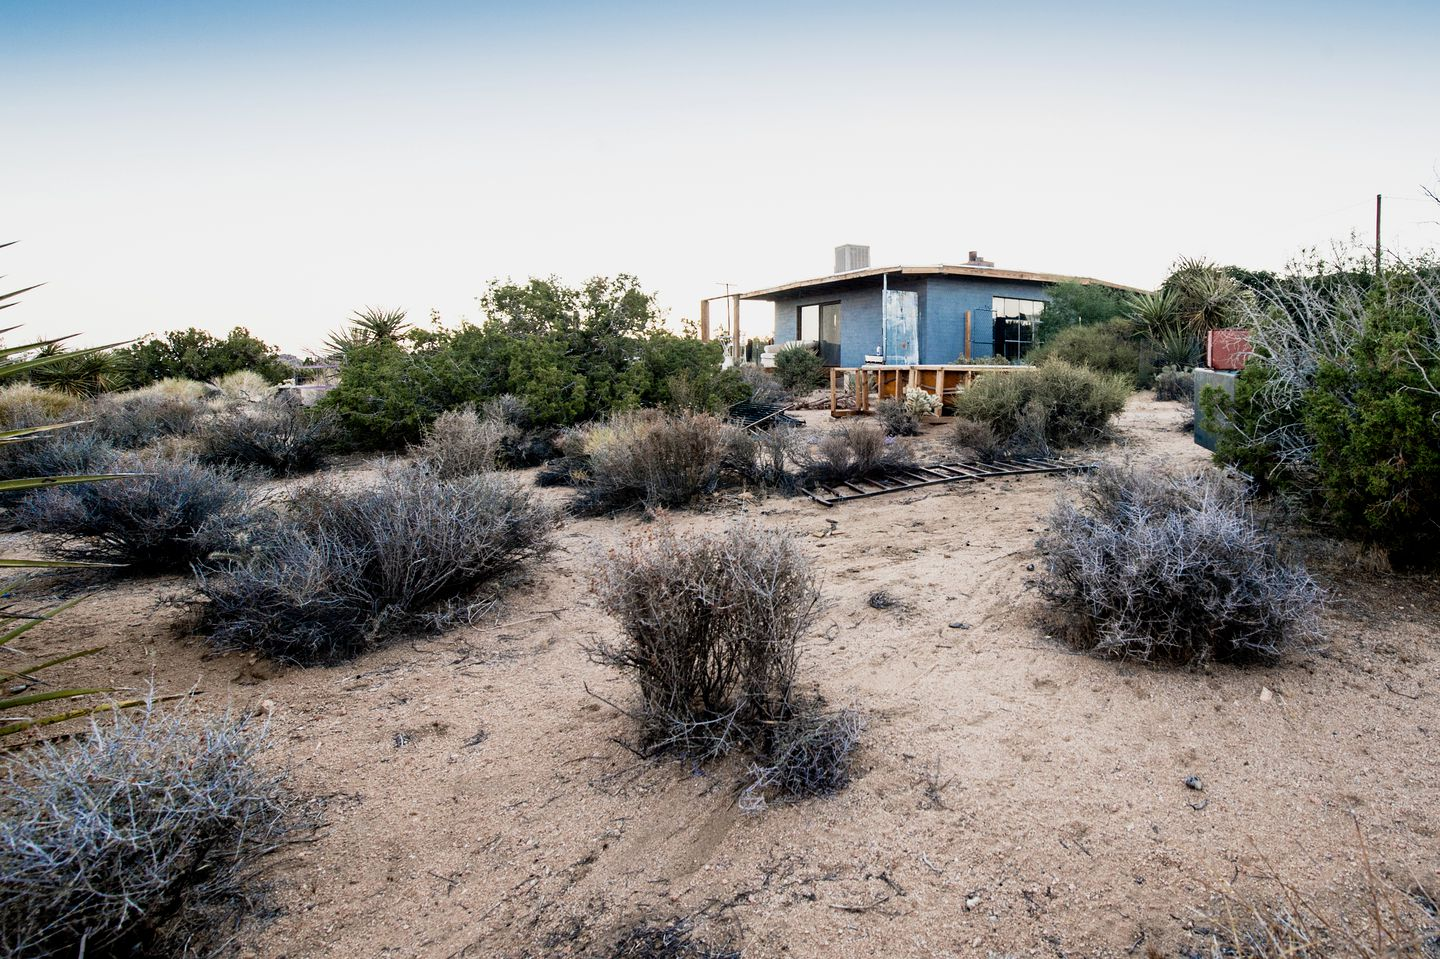 Cabins (Yucca Valley, California, United States)